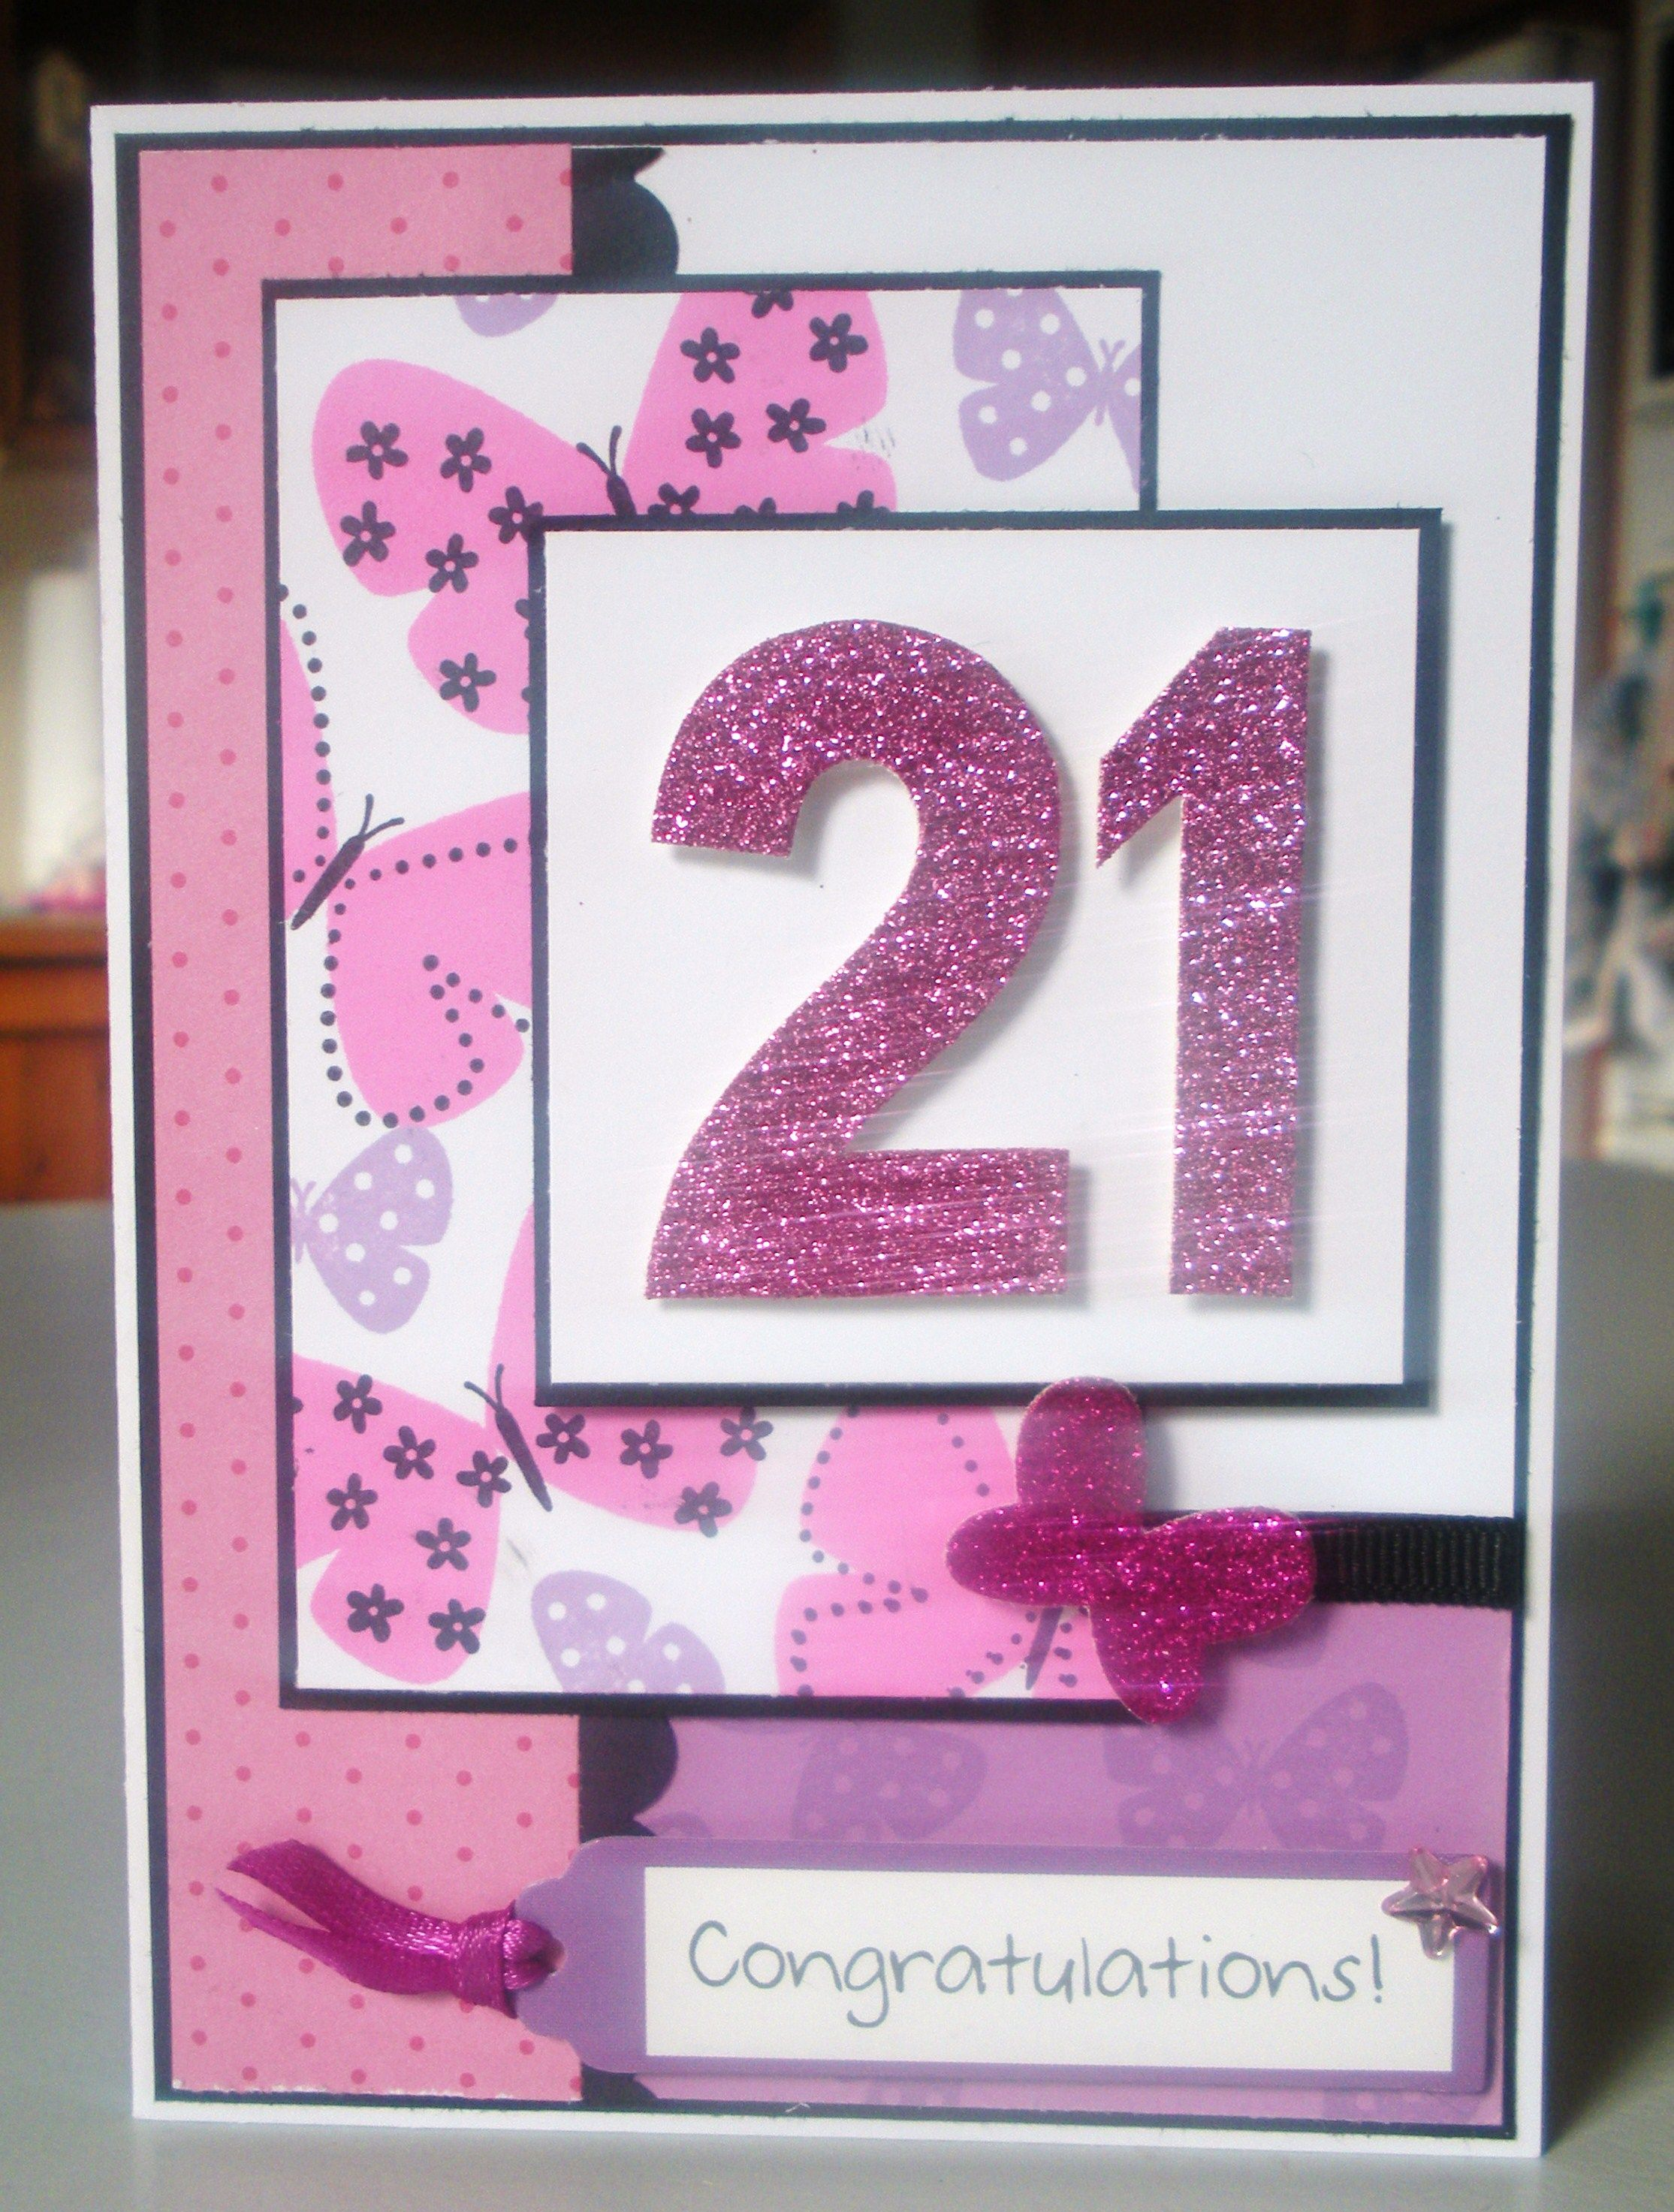 Ordinary Card Making Ideas 21st Birthday Part - 1: Cardmaking · Handmade 21st Birthday ...